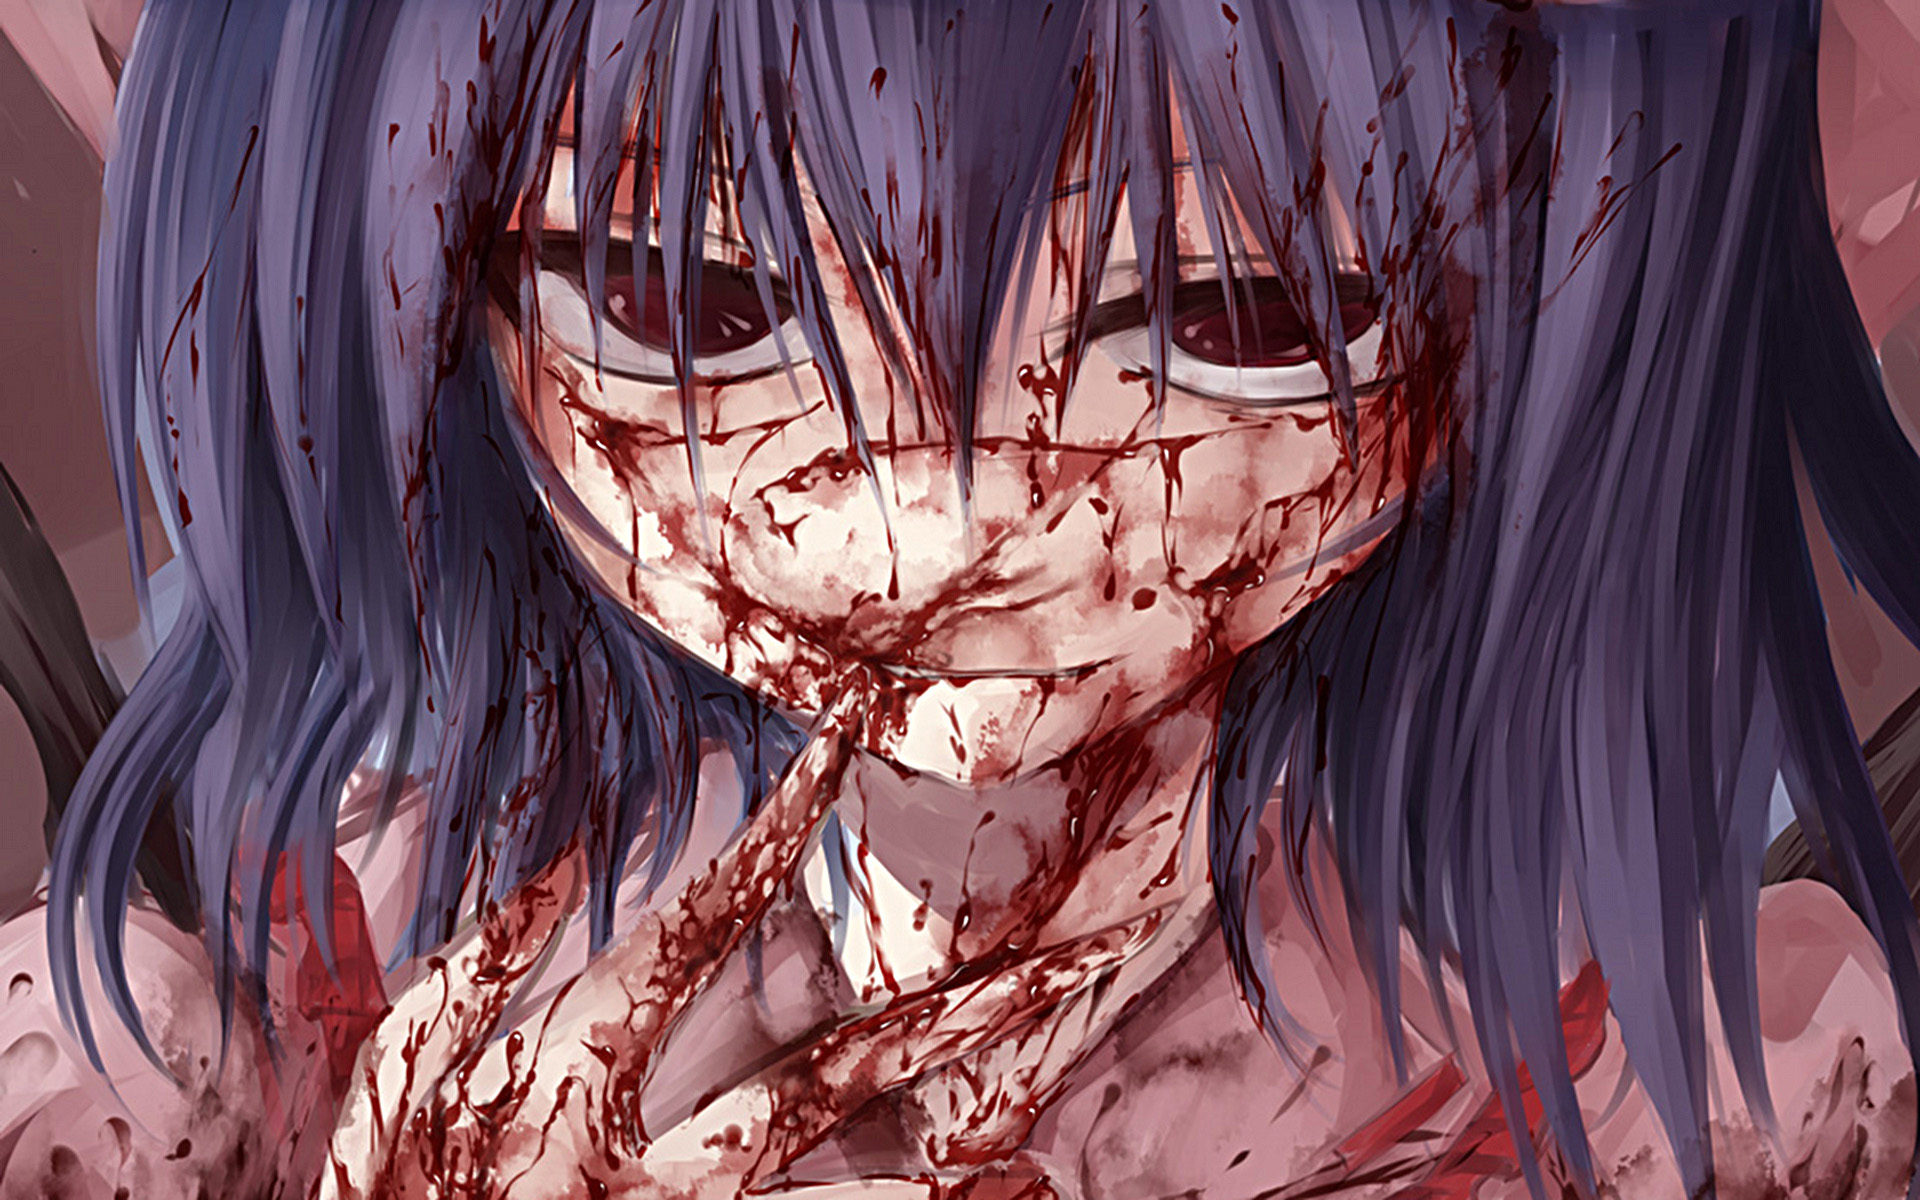 blood anime hd photo 3 - HD Wallpapers Buzz